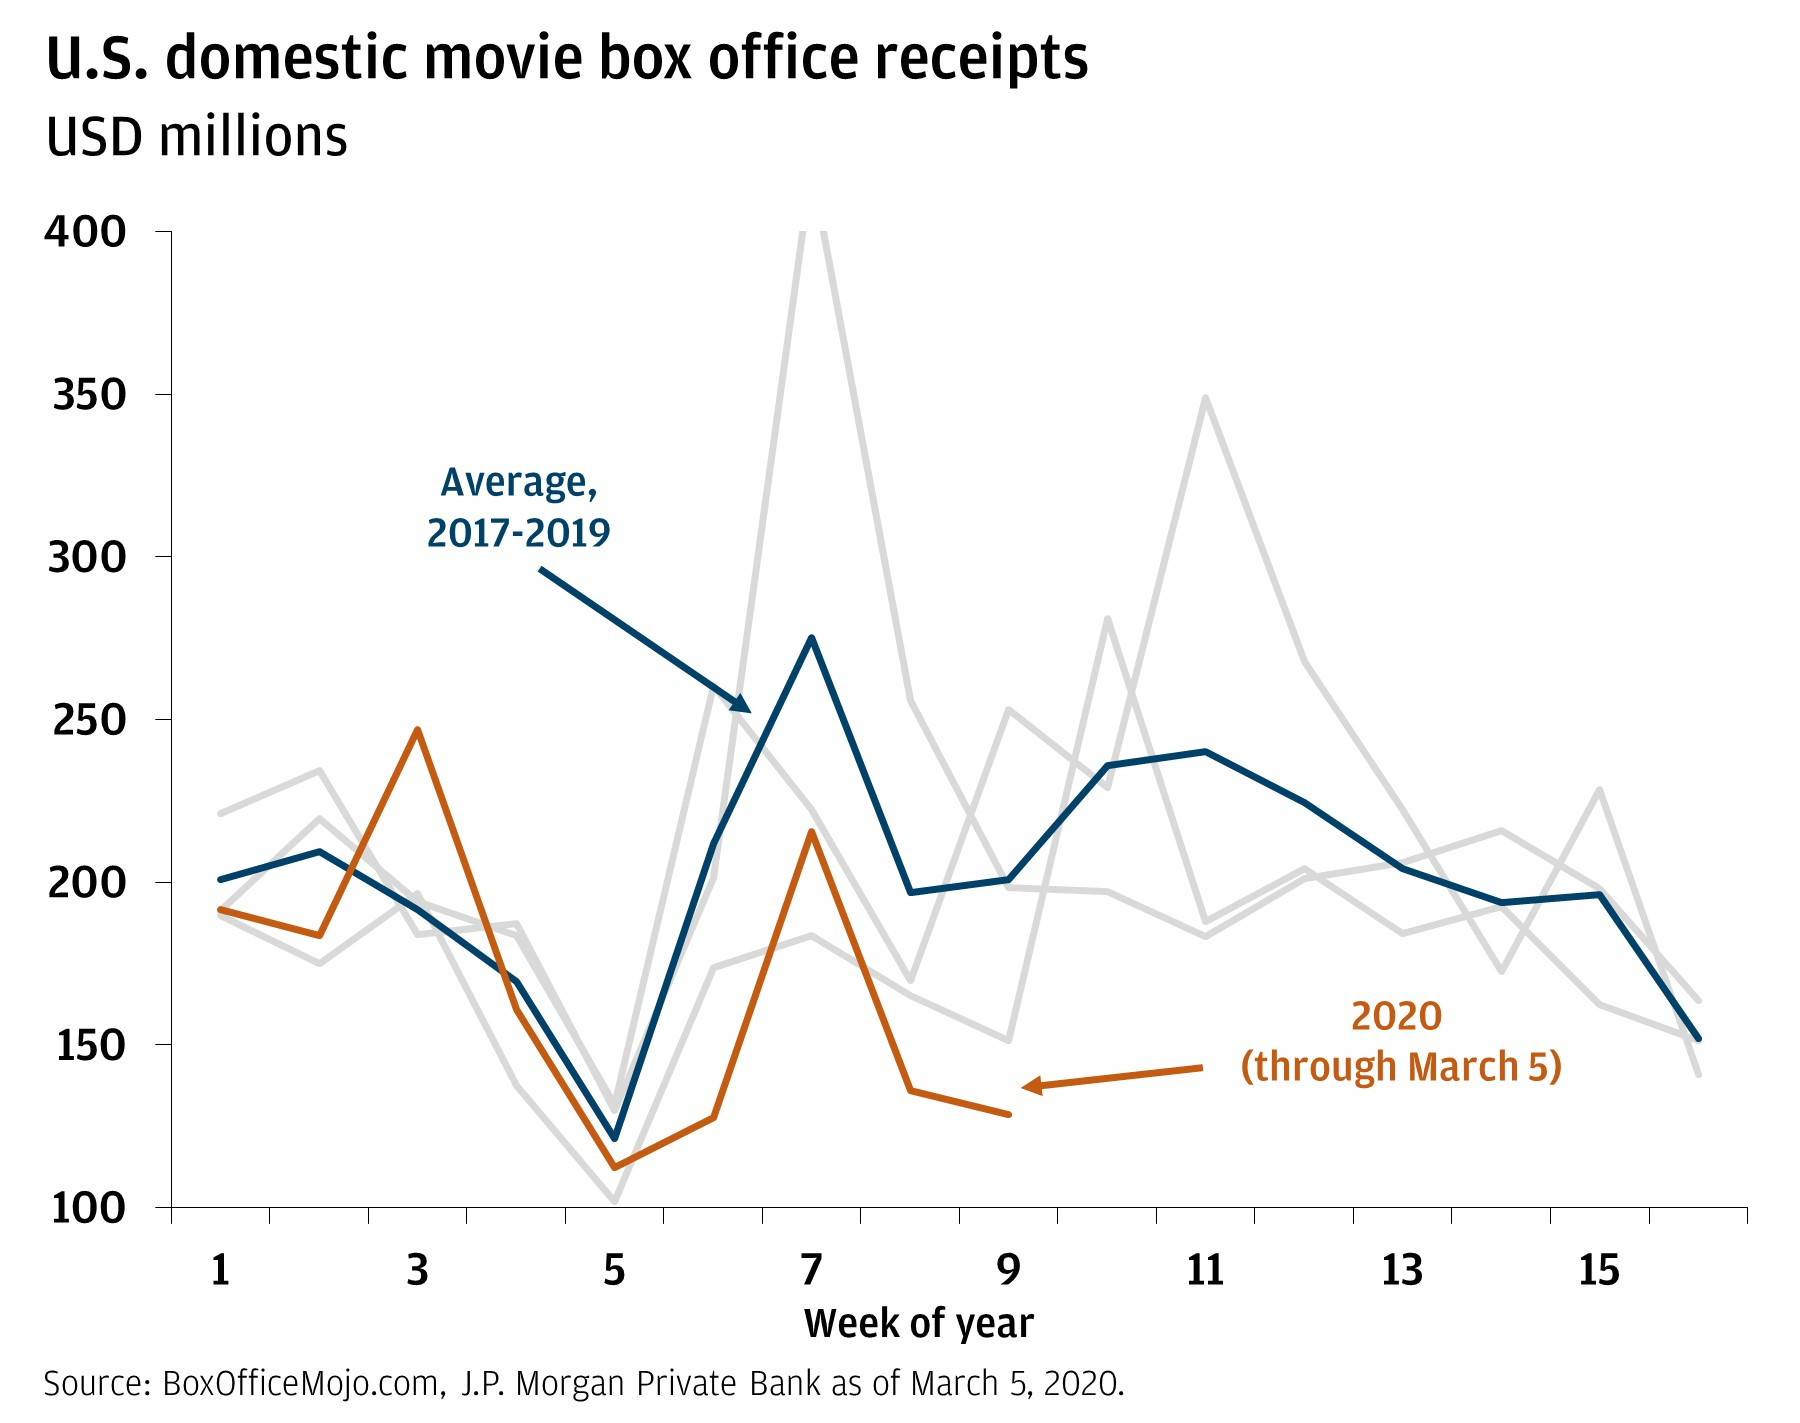 The line chart shows the millions of movie box office receipts for each week of the year. It has two lines: one showing the average from 2017 to 2019, and one showing 2020 through March 5. It shows that, thus far, 2020 has been below average but has followed the same trends.